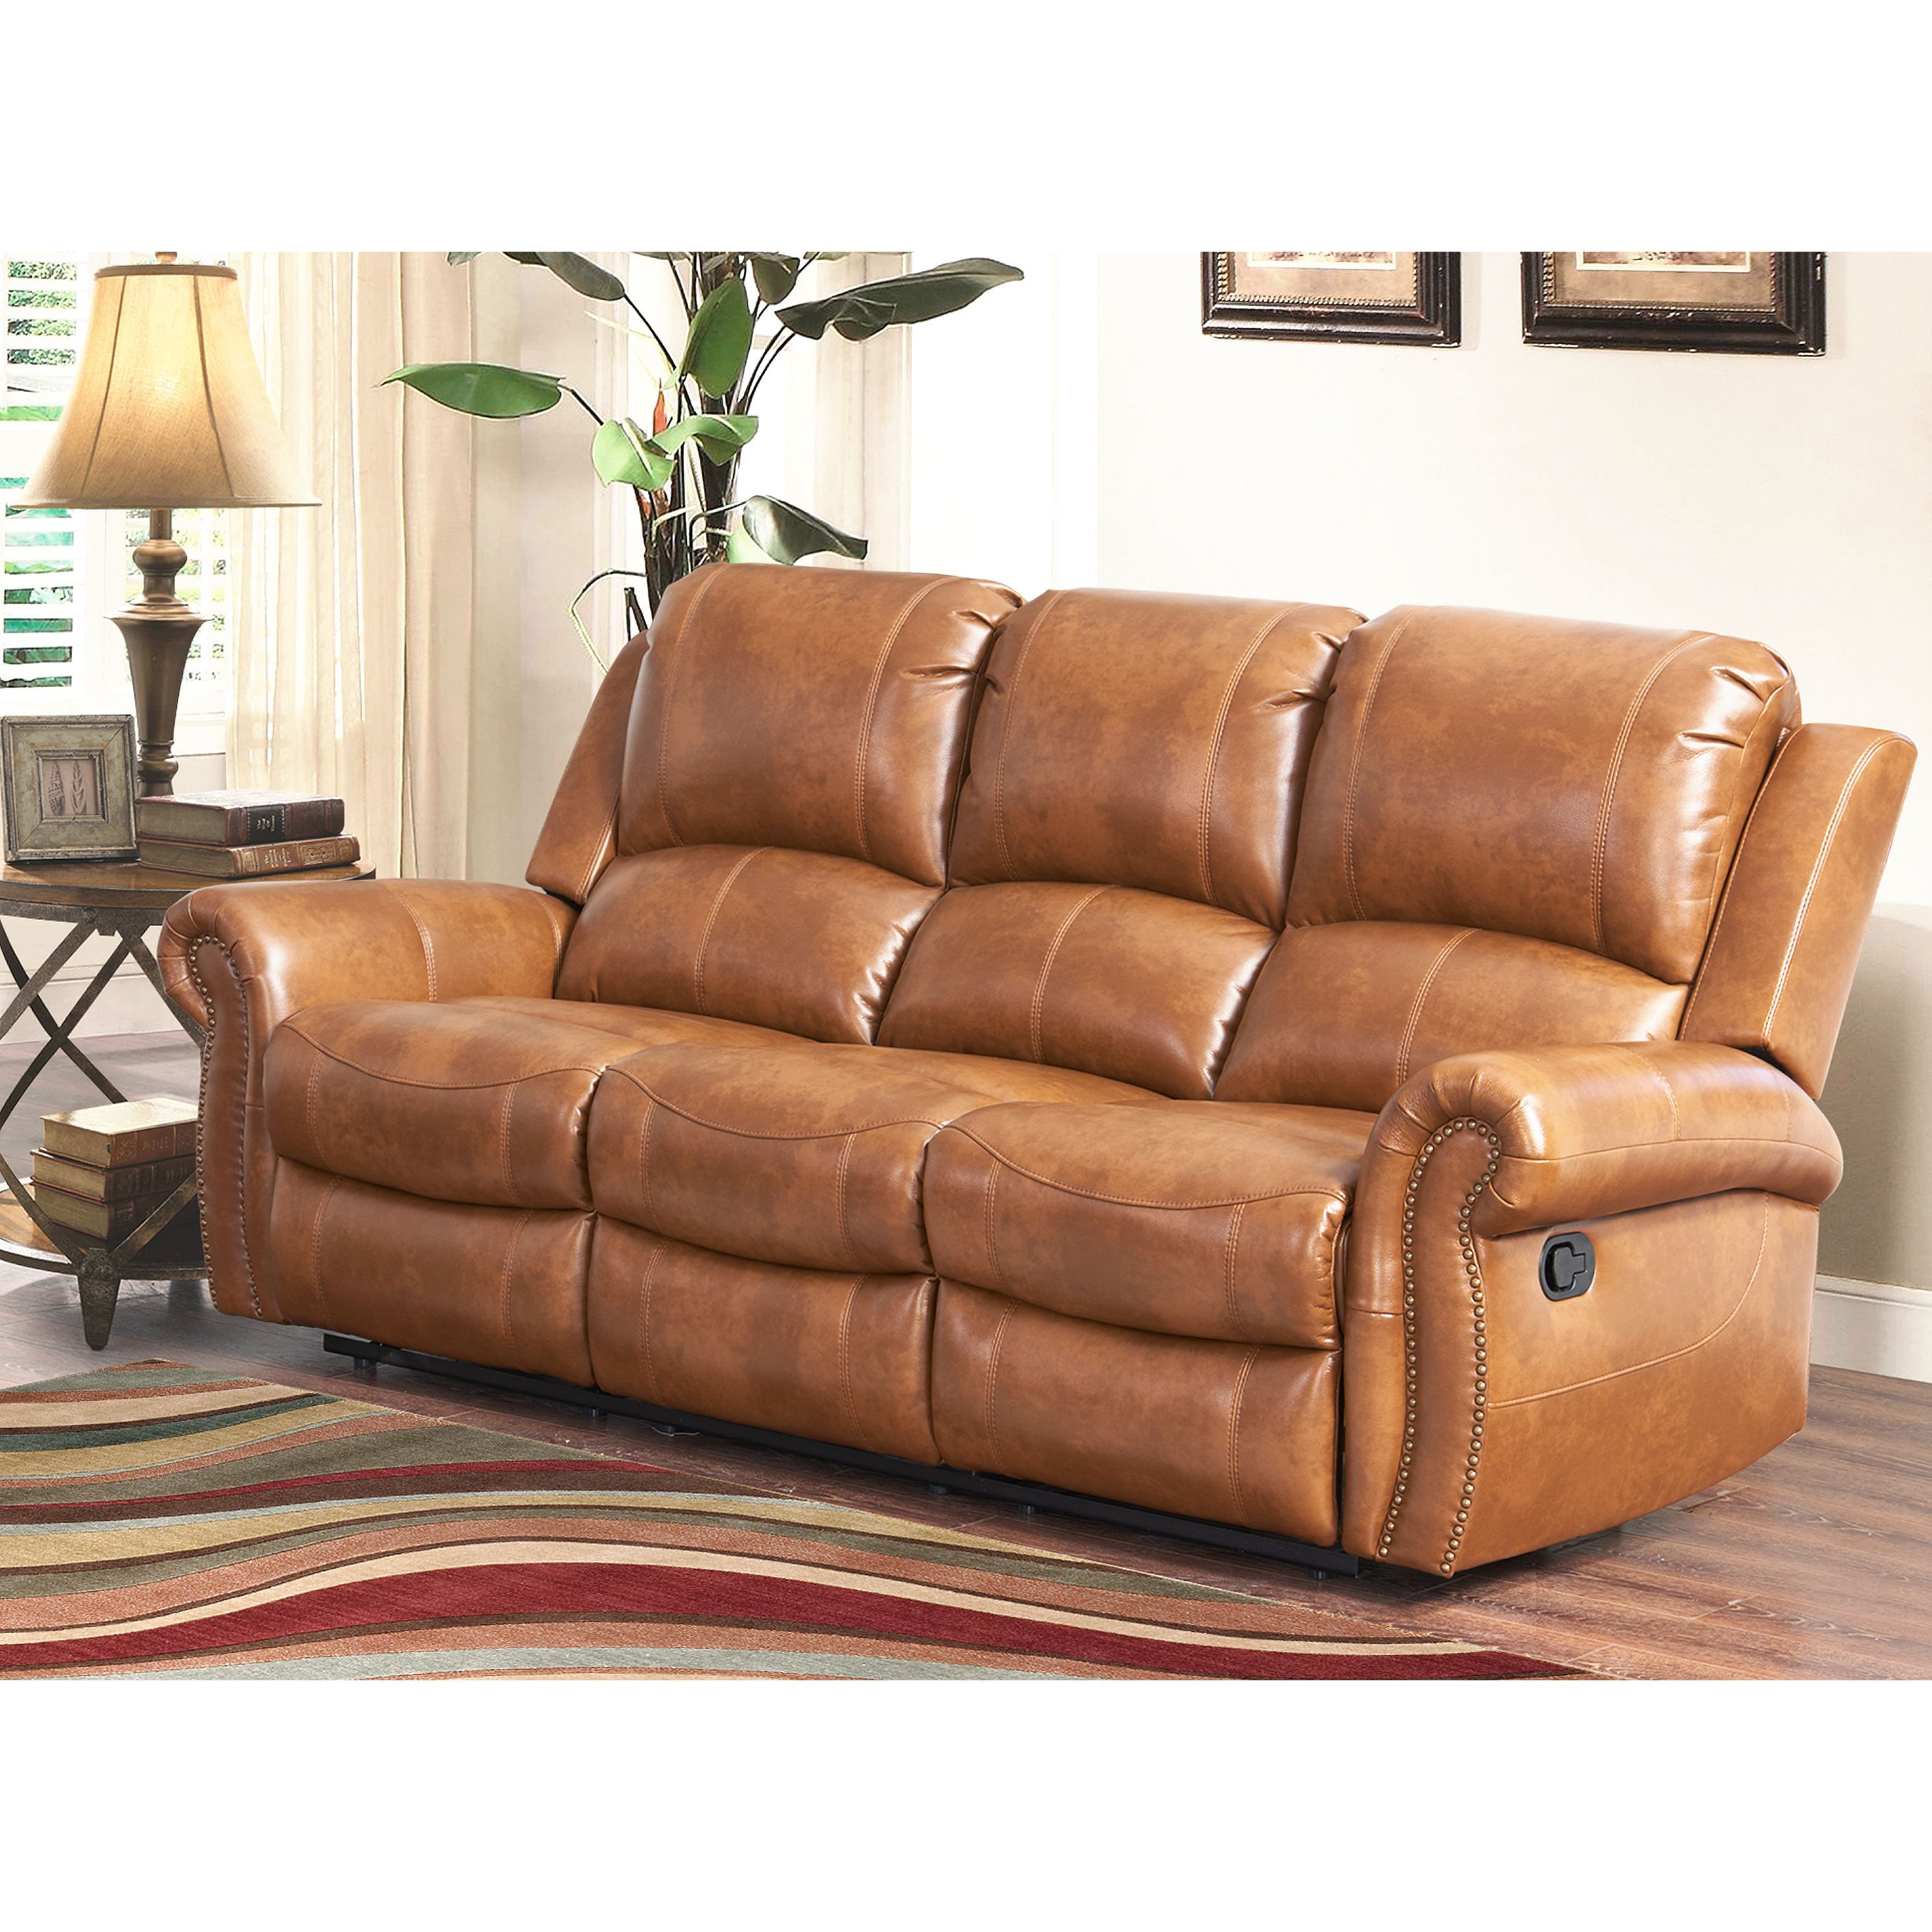 Swell Abbyson Skyler Cognac Leather Reclining Sofa Brown Gmtry Best Dining Table And Chair Ideas Images Gmtryco